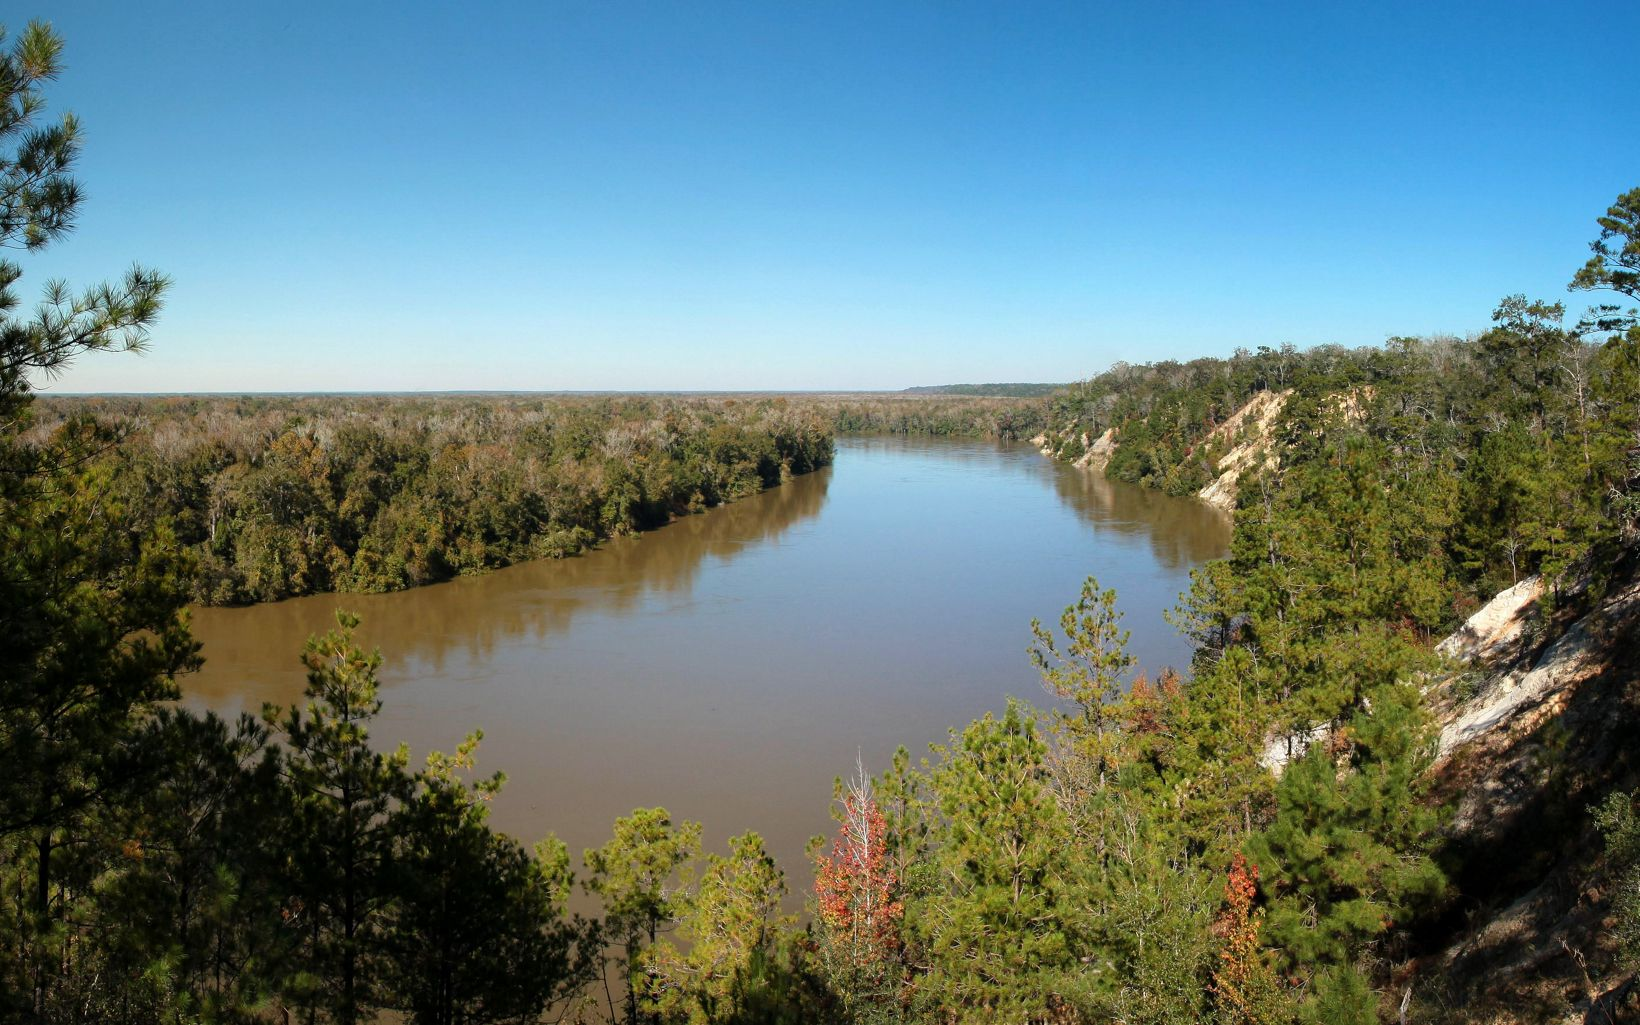 Apalachicola Bluffs and Ravines Preserve in Florida.